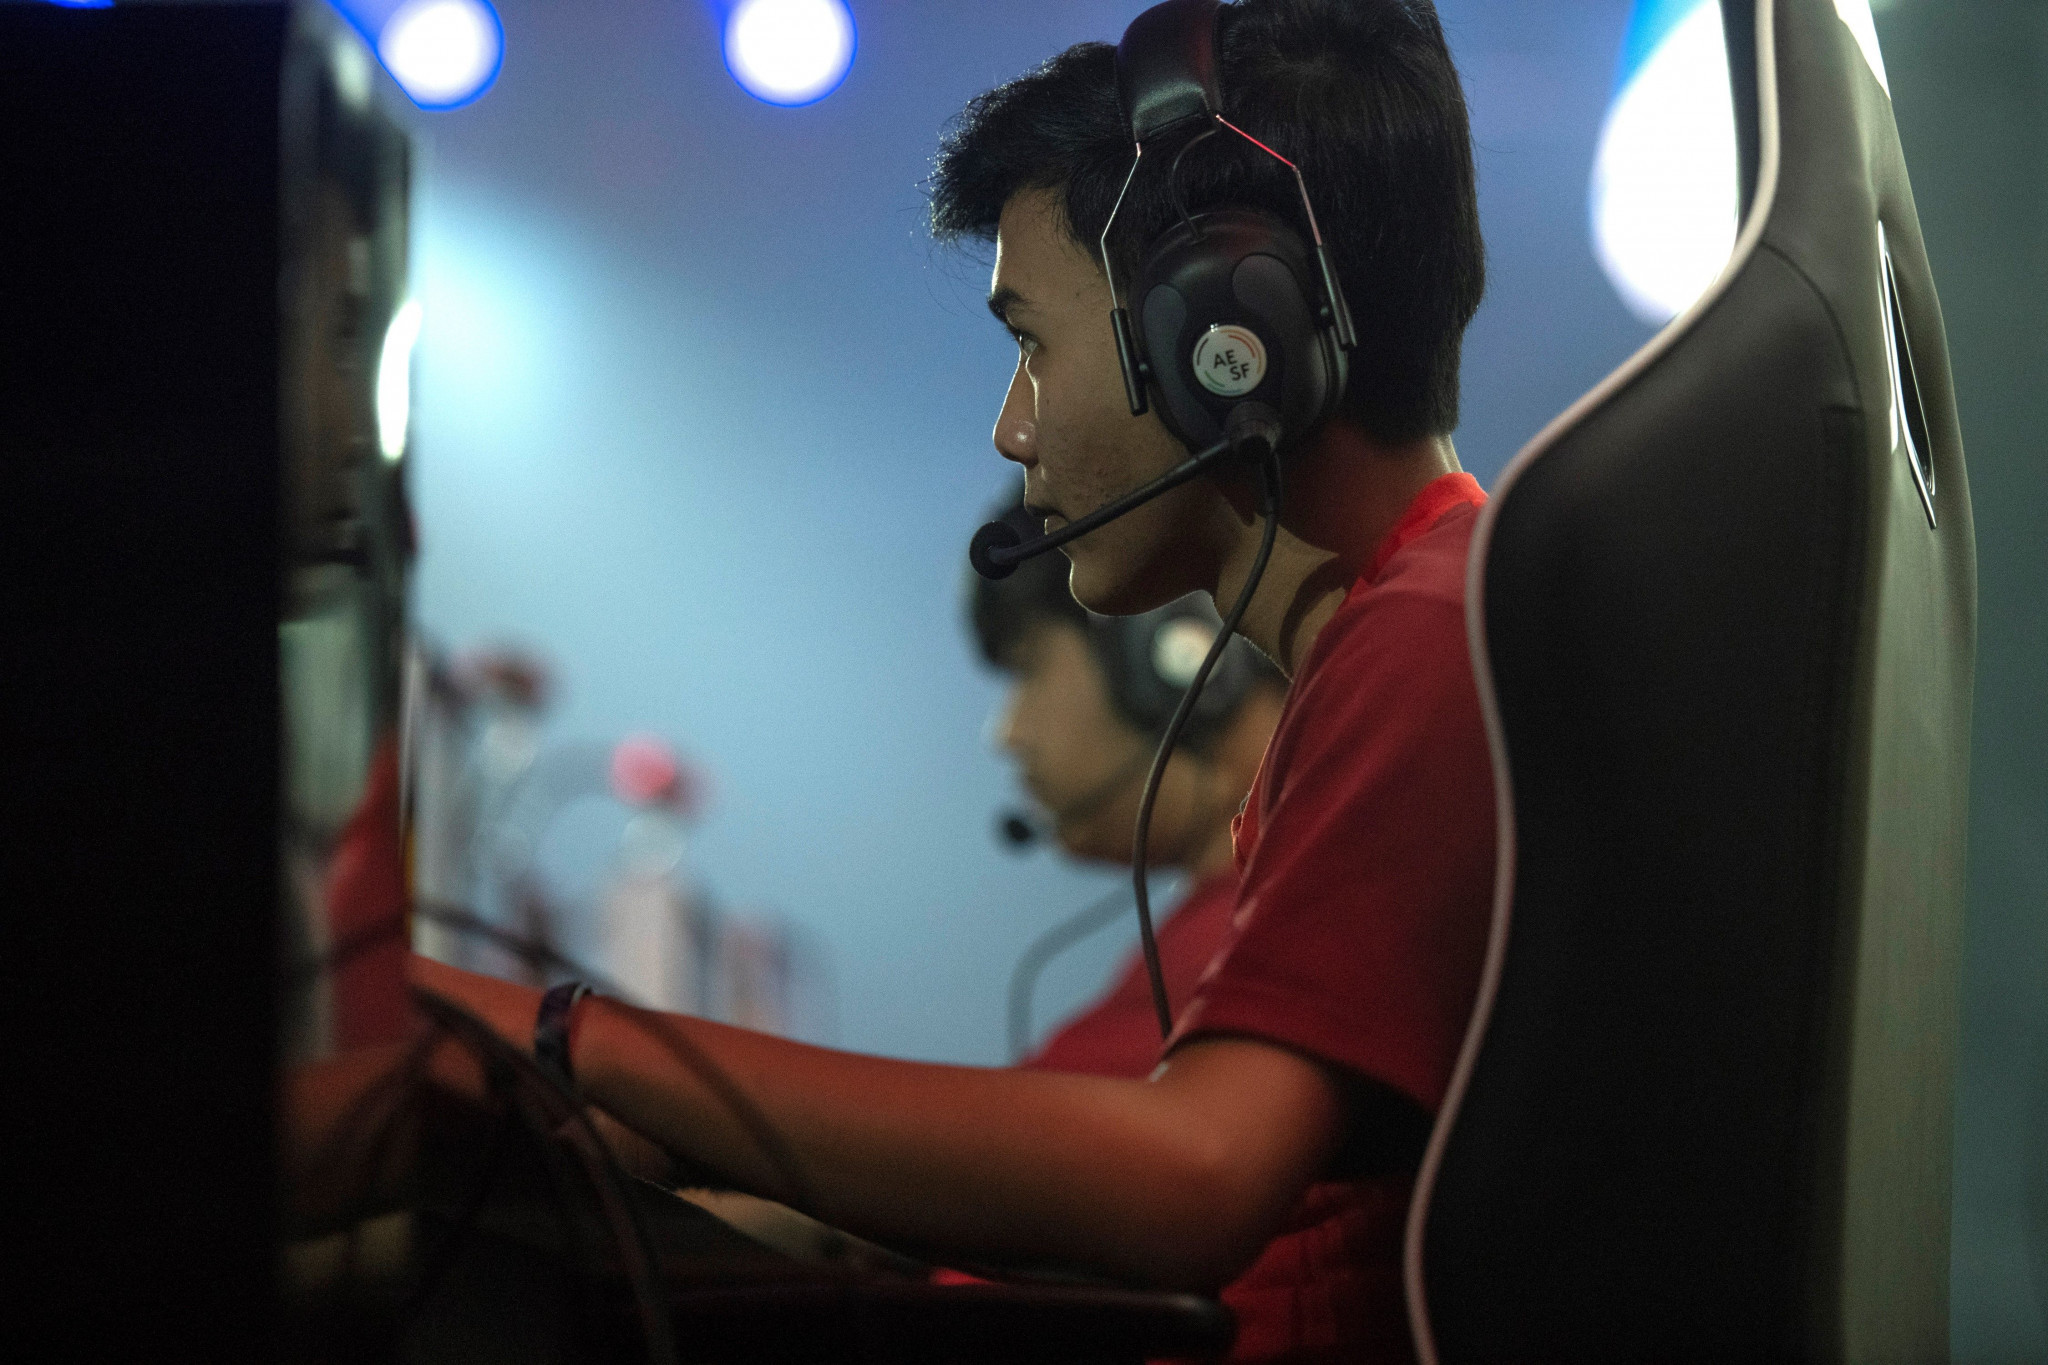 AESF signs MoU impacting which esports titles will be contested at 2022 Asian Games